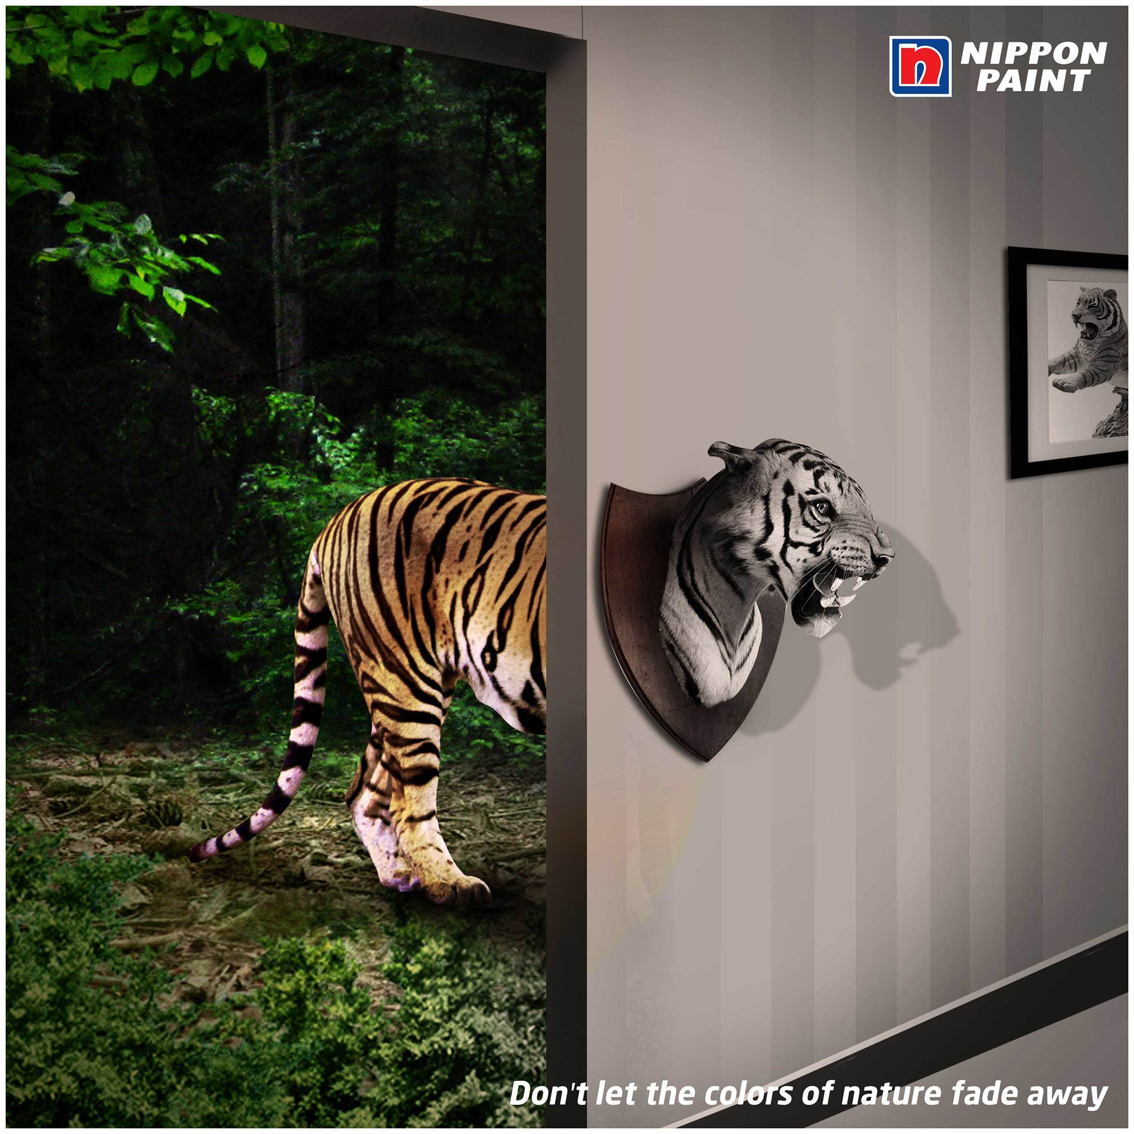 Adwants Chennai and Nippon Paint keep colours of nature alive